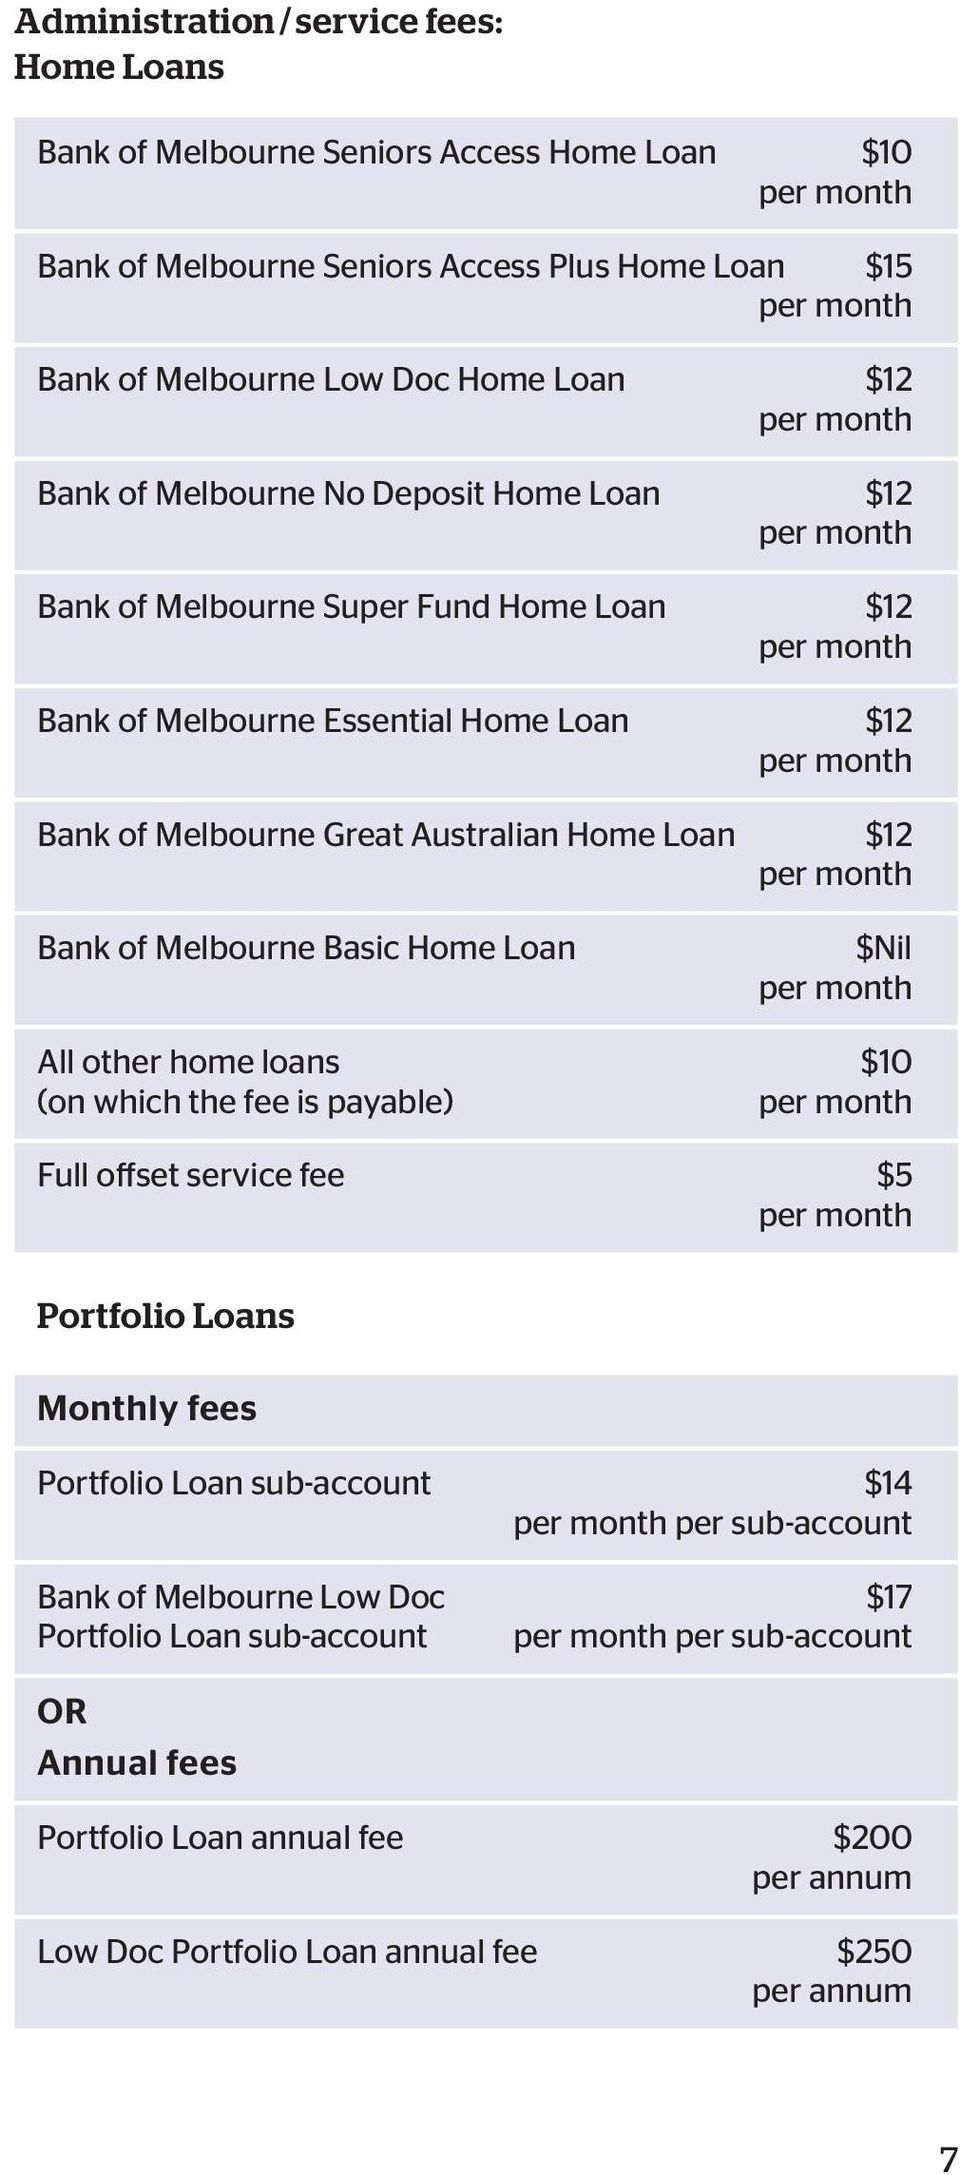 Australian Home Loan $12 per month Bank of Melbourne Basic Home Loan $Nil per month All other home loans $10 (on which the fee is payable) per month Full offset service fee $5 per month Portfolio